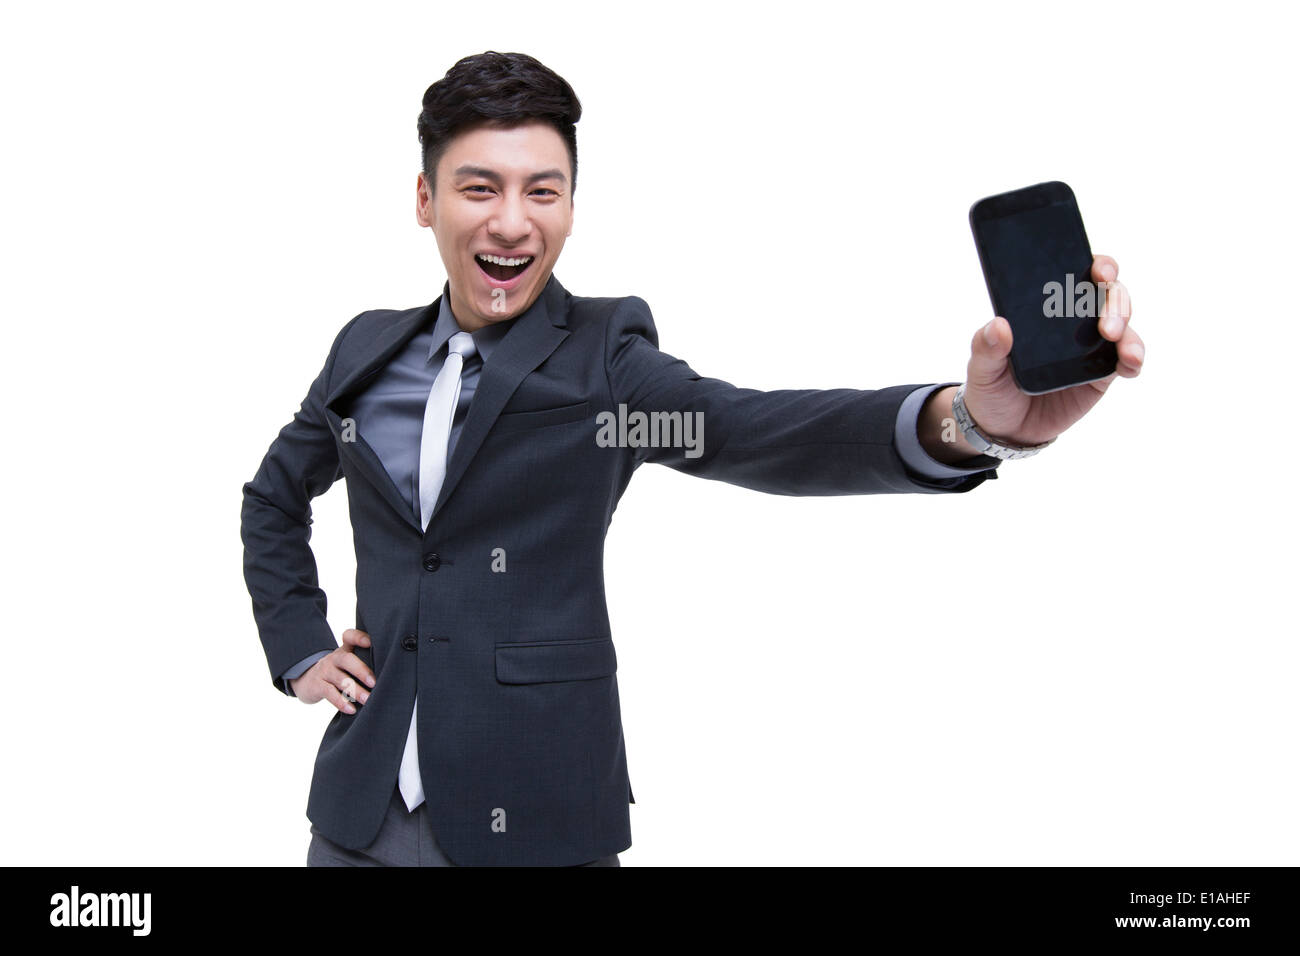 Cheerful businessman being proud of his smart phone - Stock Image